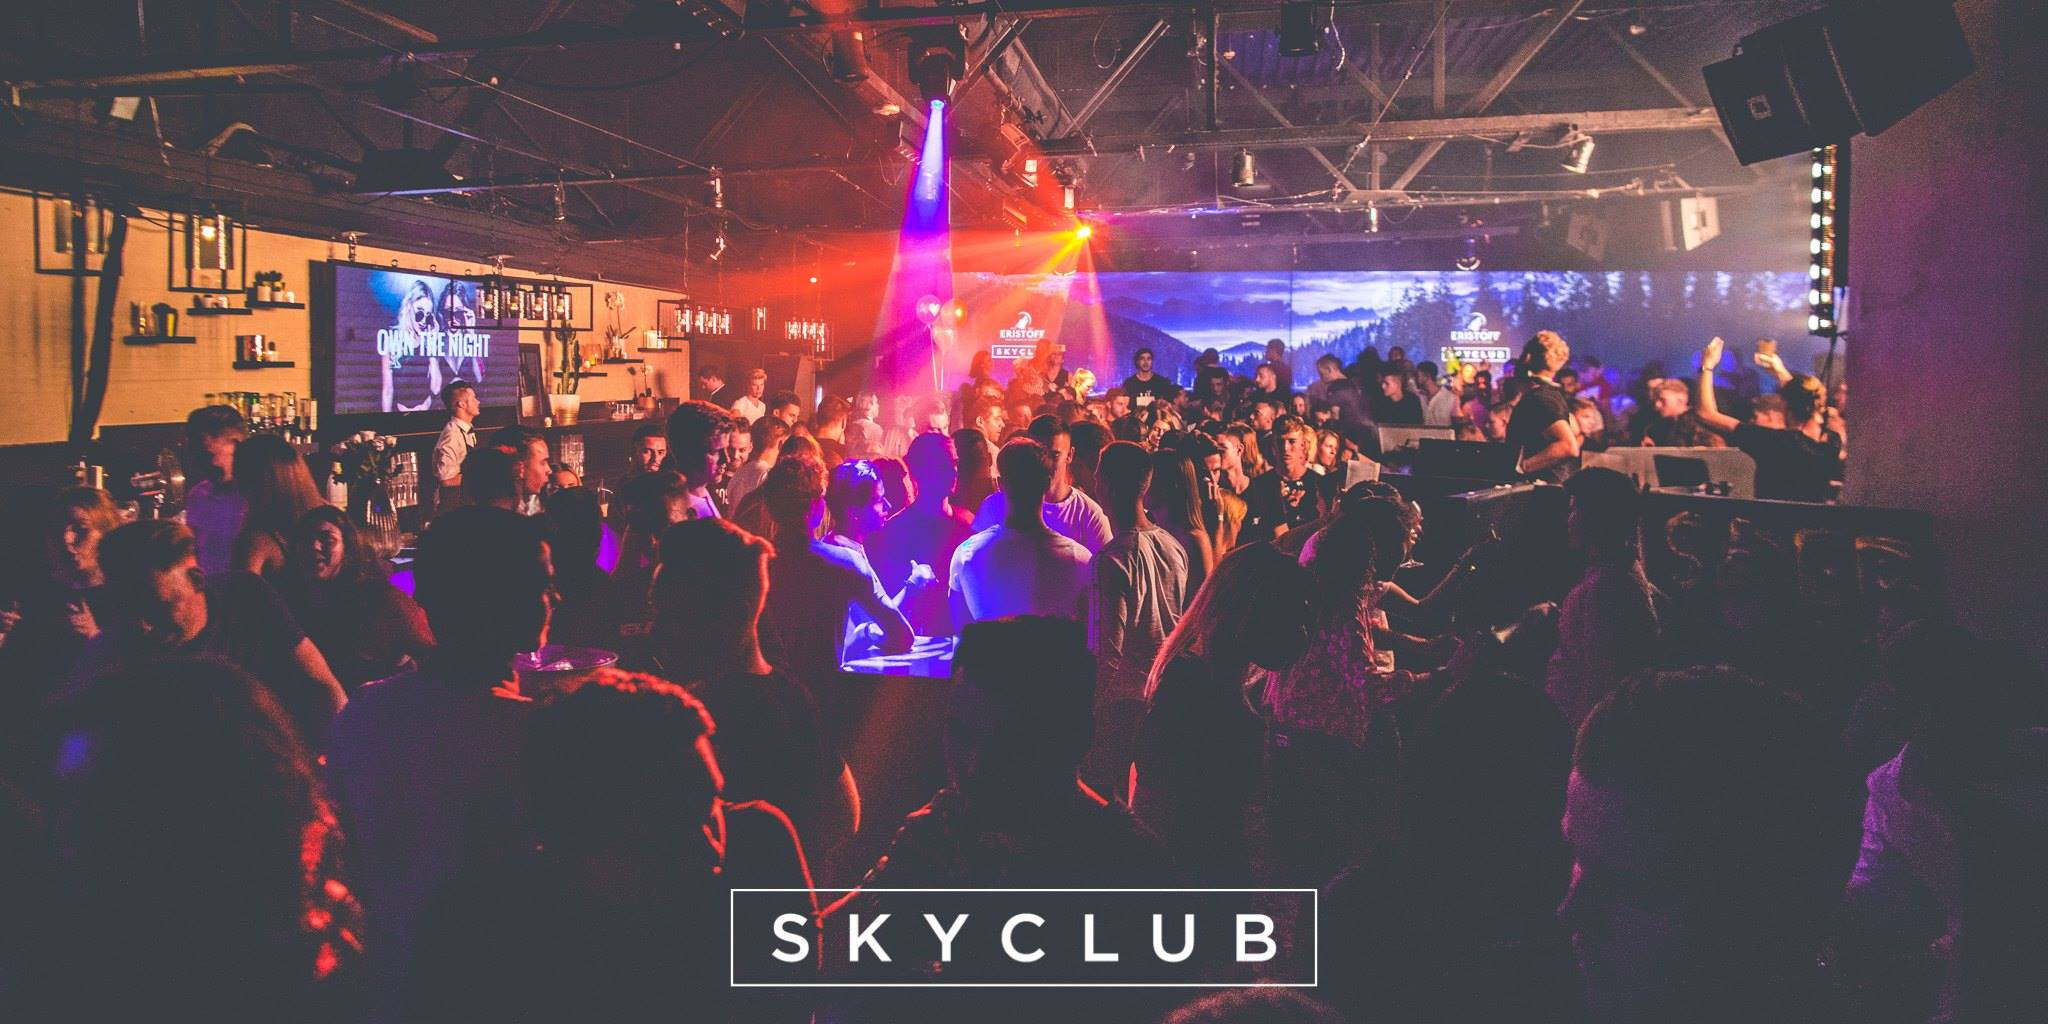 skyclub open tonight